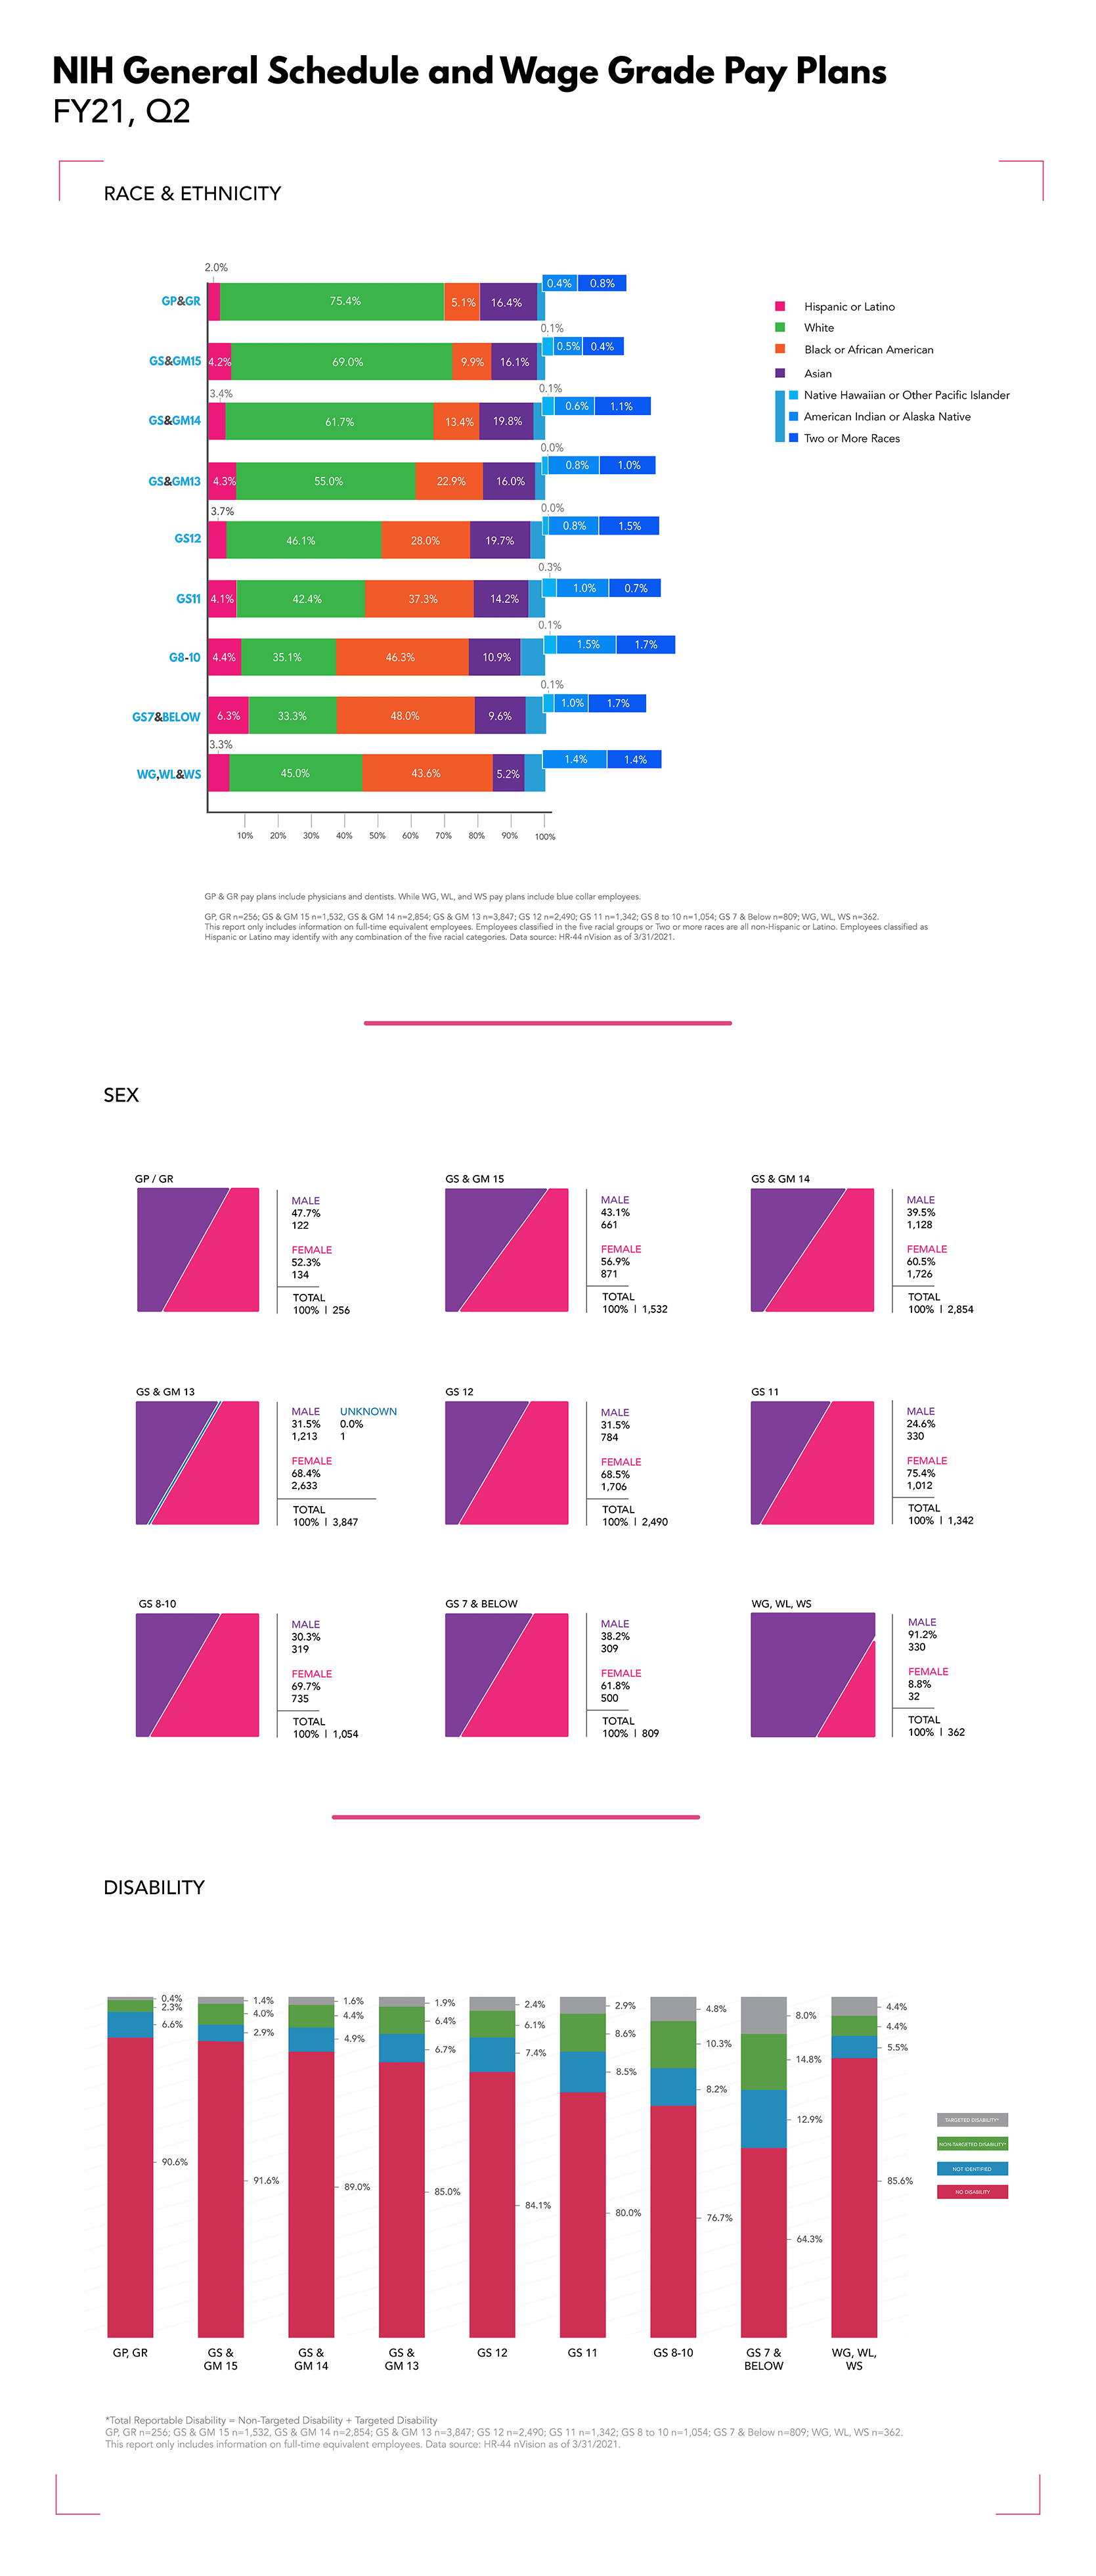 NIH General Schedule and Wage Grade Pay Plans Infographic